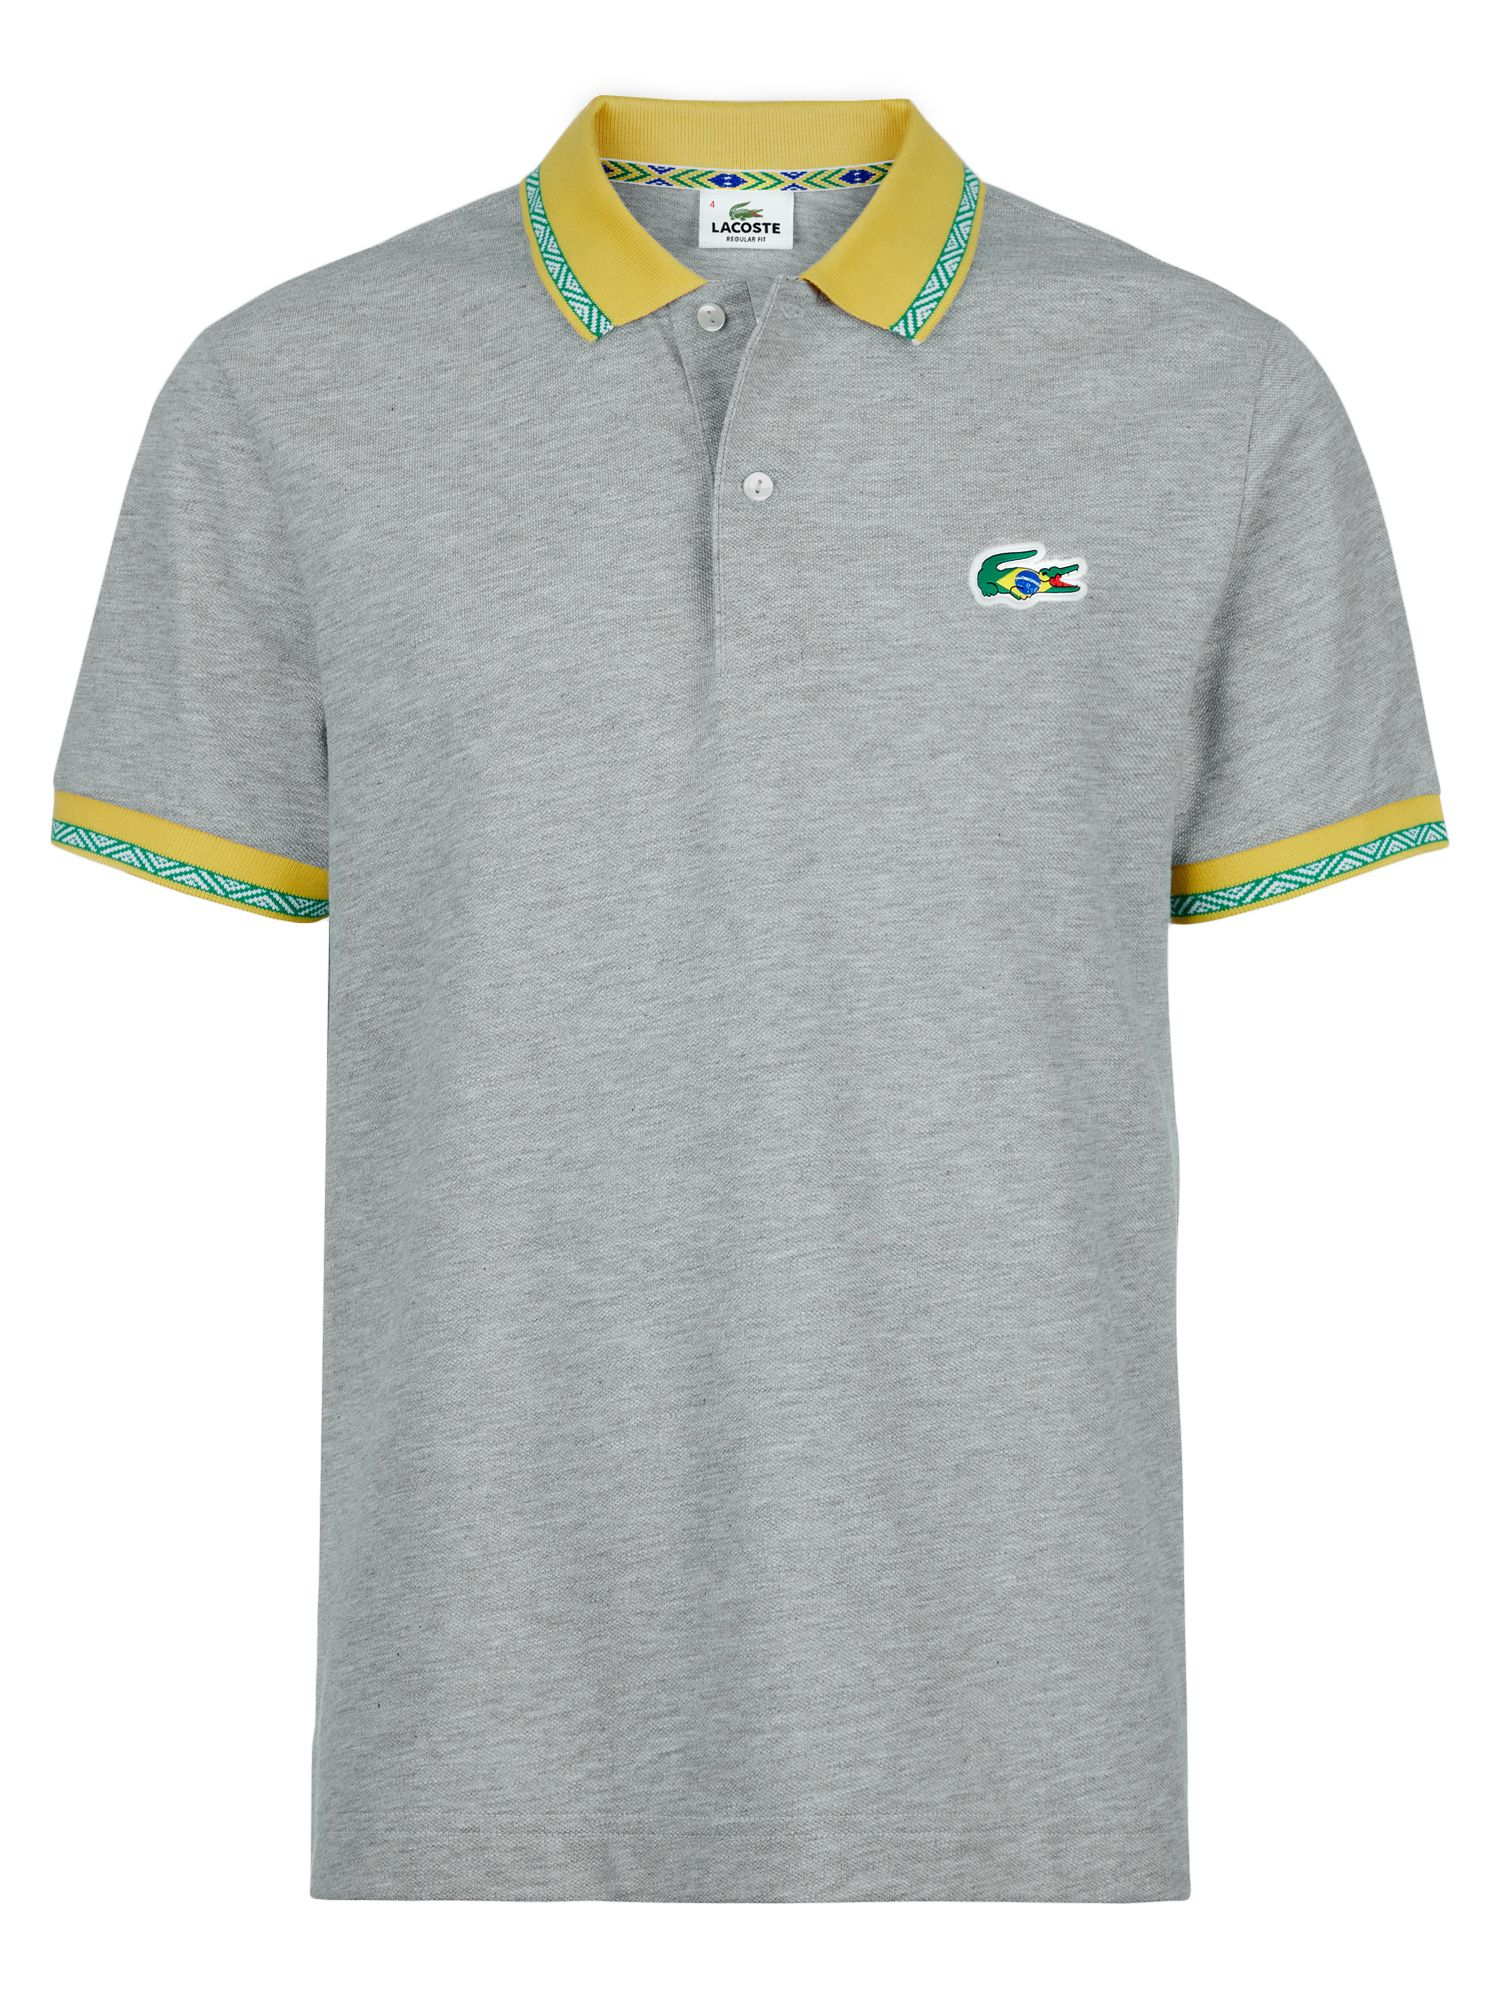 Brazil themed polo shirt